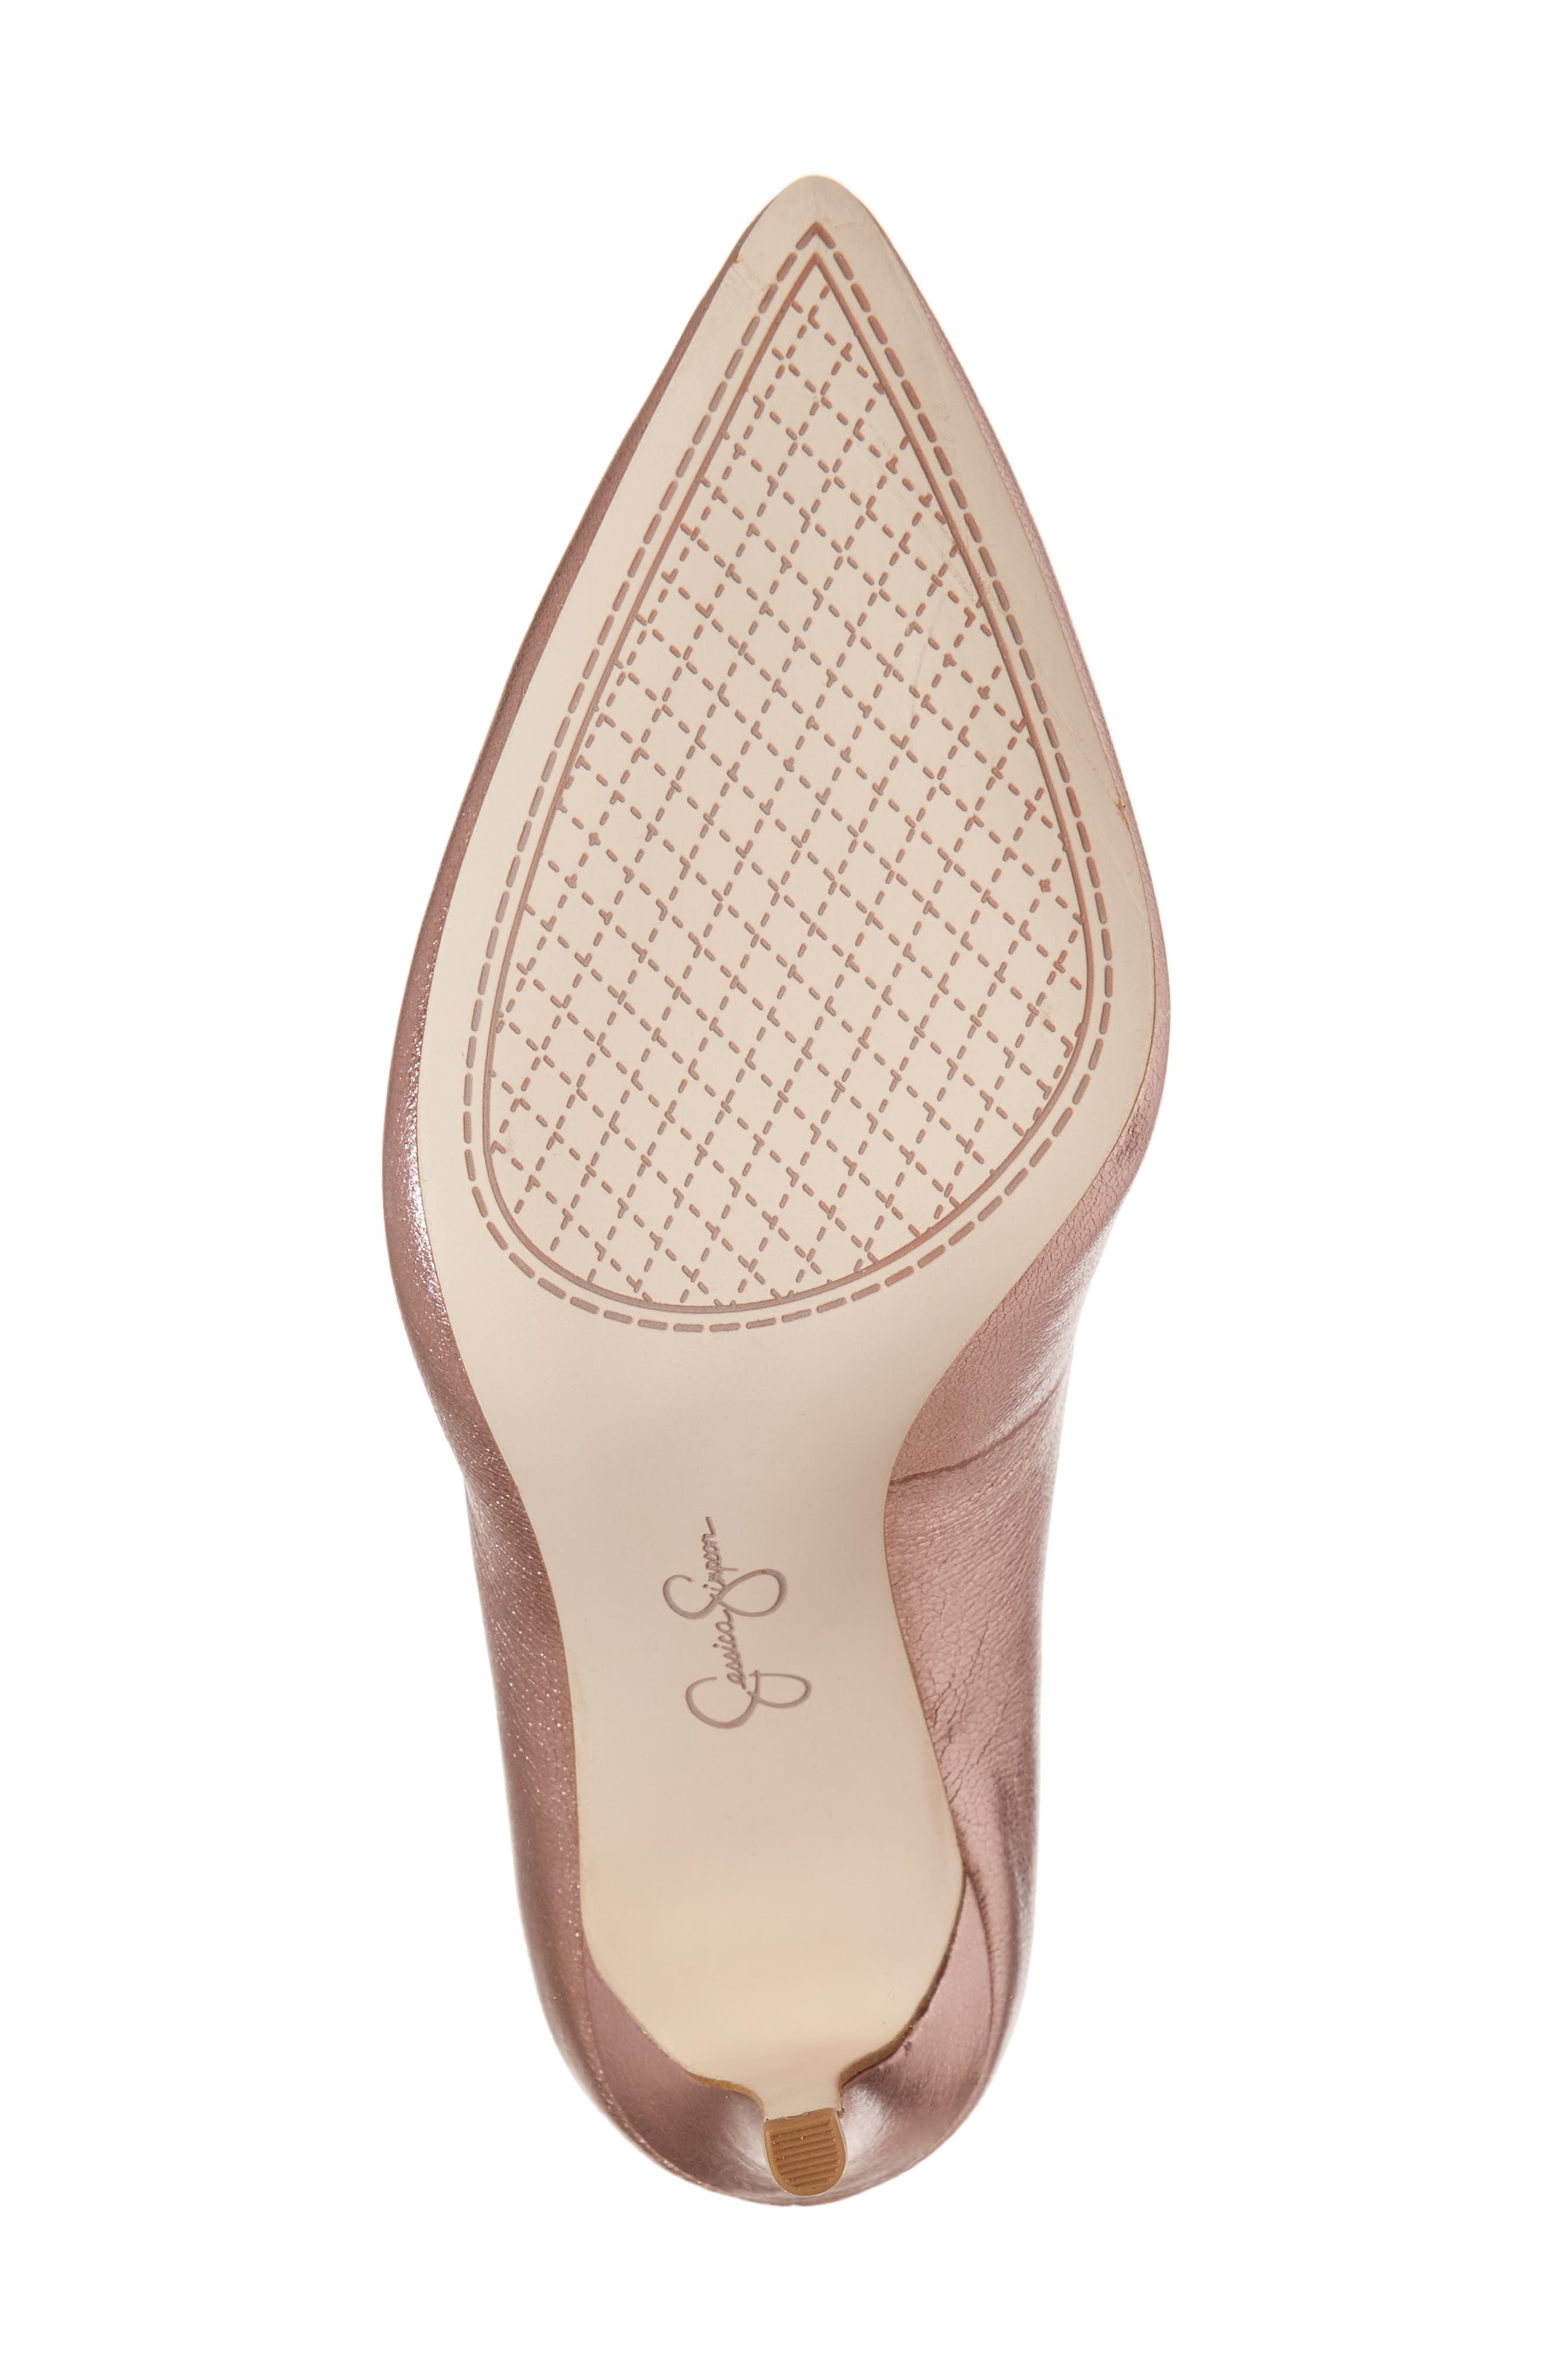 Praylee Pointy Toe Pump,                             Alternate thumbnail 6, color,                             Dolly Pink Leather